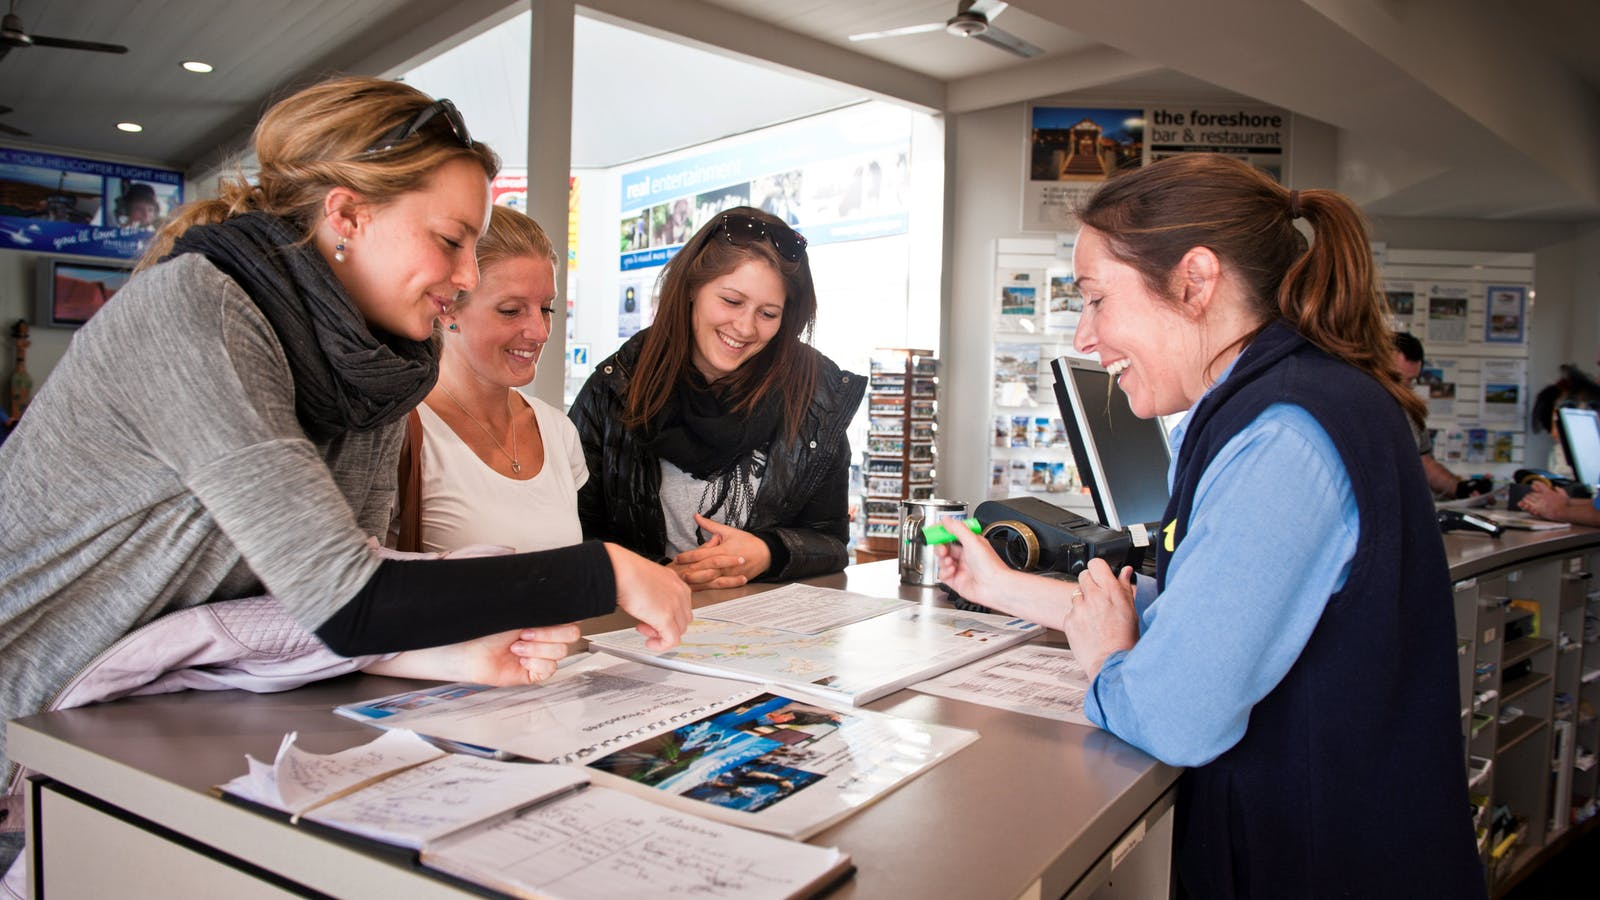 Welcoming visitors to the Phillip Island Visitor Information Centre